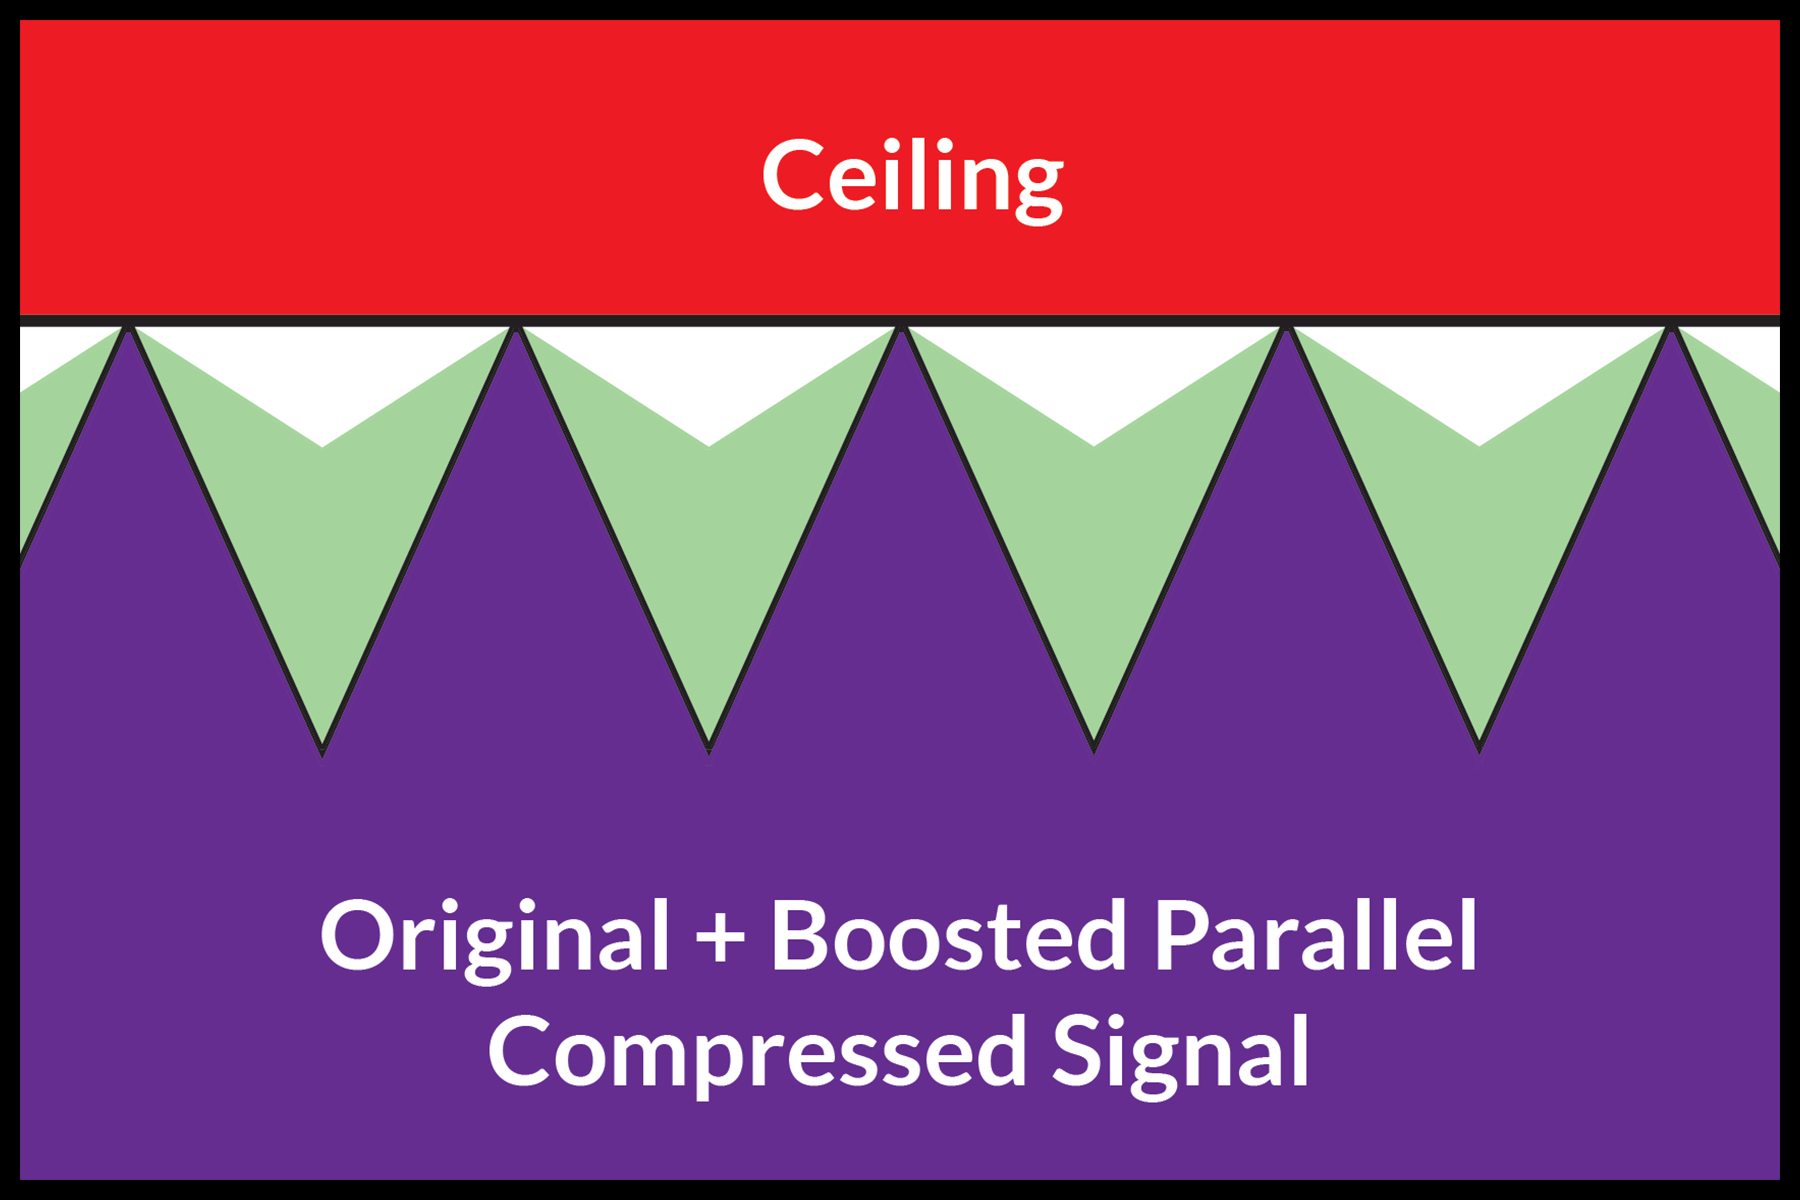 An image of a dynamic audio signal peaking at digital maximum, mixed with a boosted parallel compressed signal.